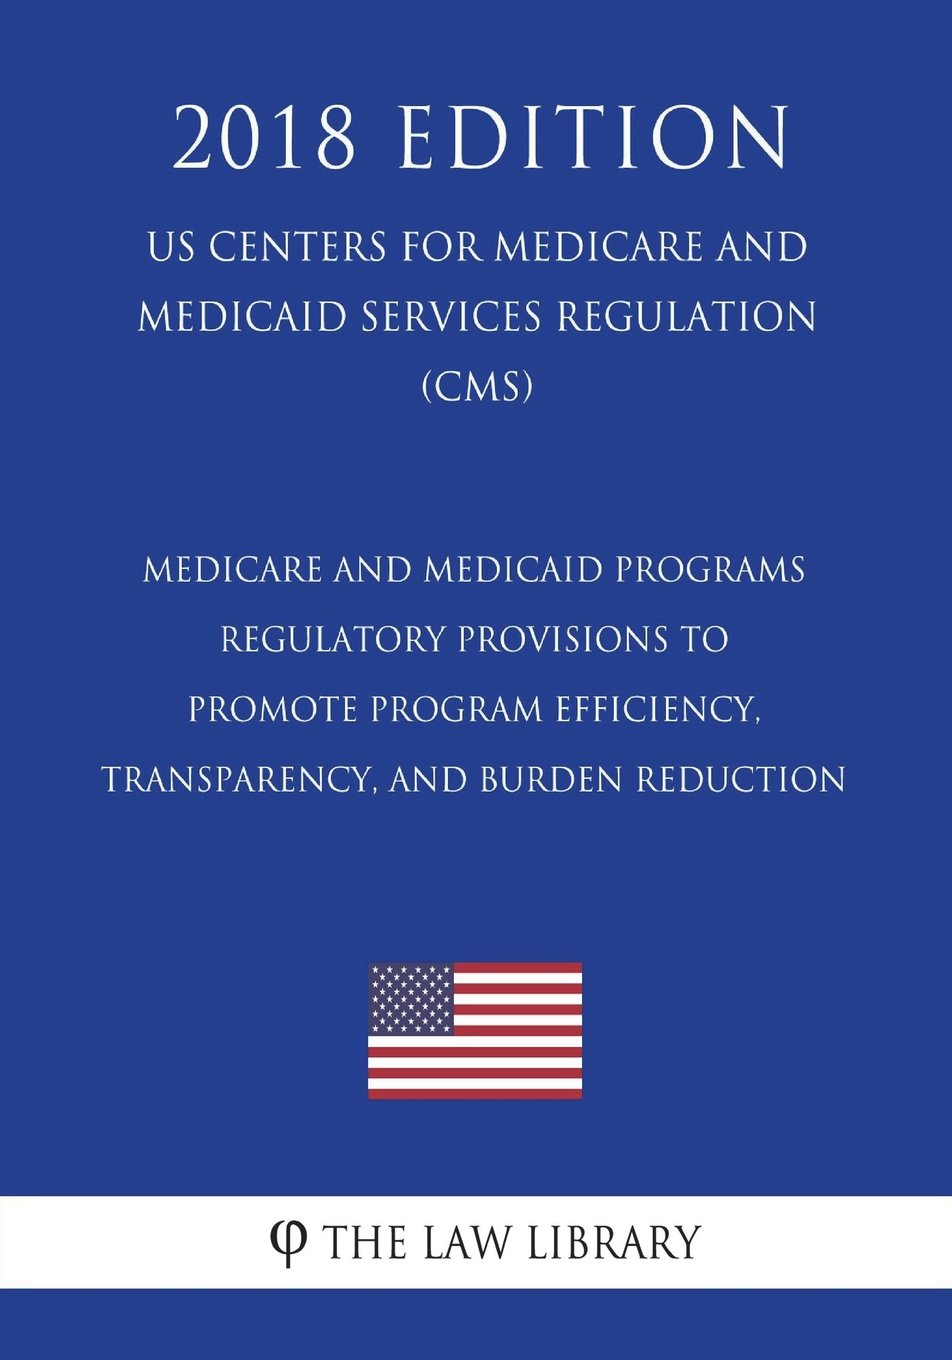 Medicare and Medicaid Programs - Regulatory Provisions to Promote Program Efficiency, Transparency, and Burden Reduction (US Centers for Medicare and Medicaid Services Regulation) (CMS) (2018 Edition) PDF